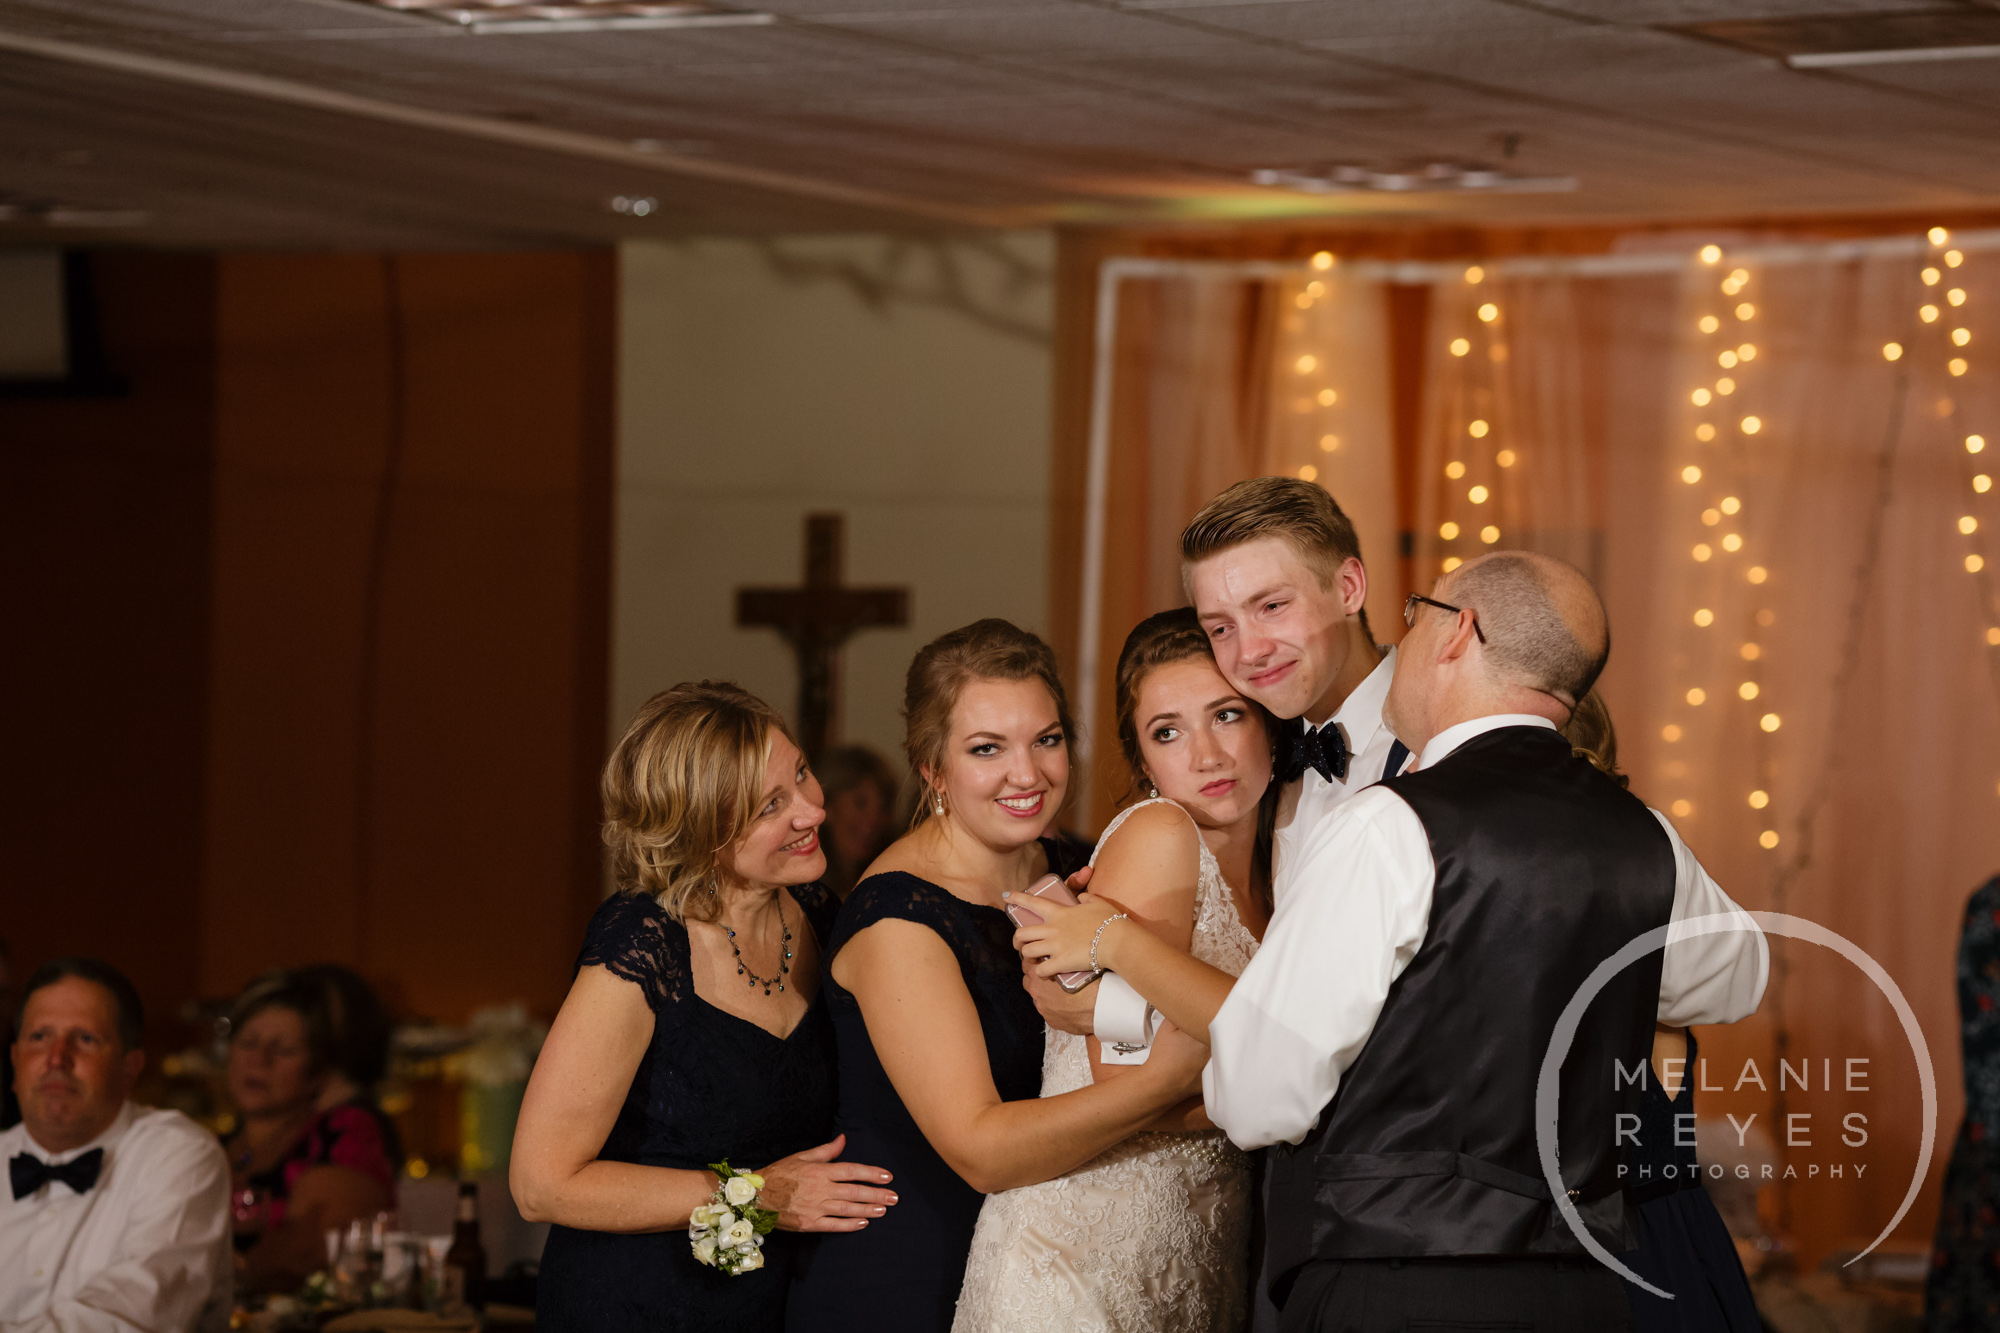 wedding_photographer_captured_moments_melaniereyes_136.jpg